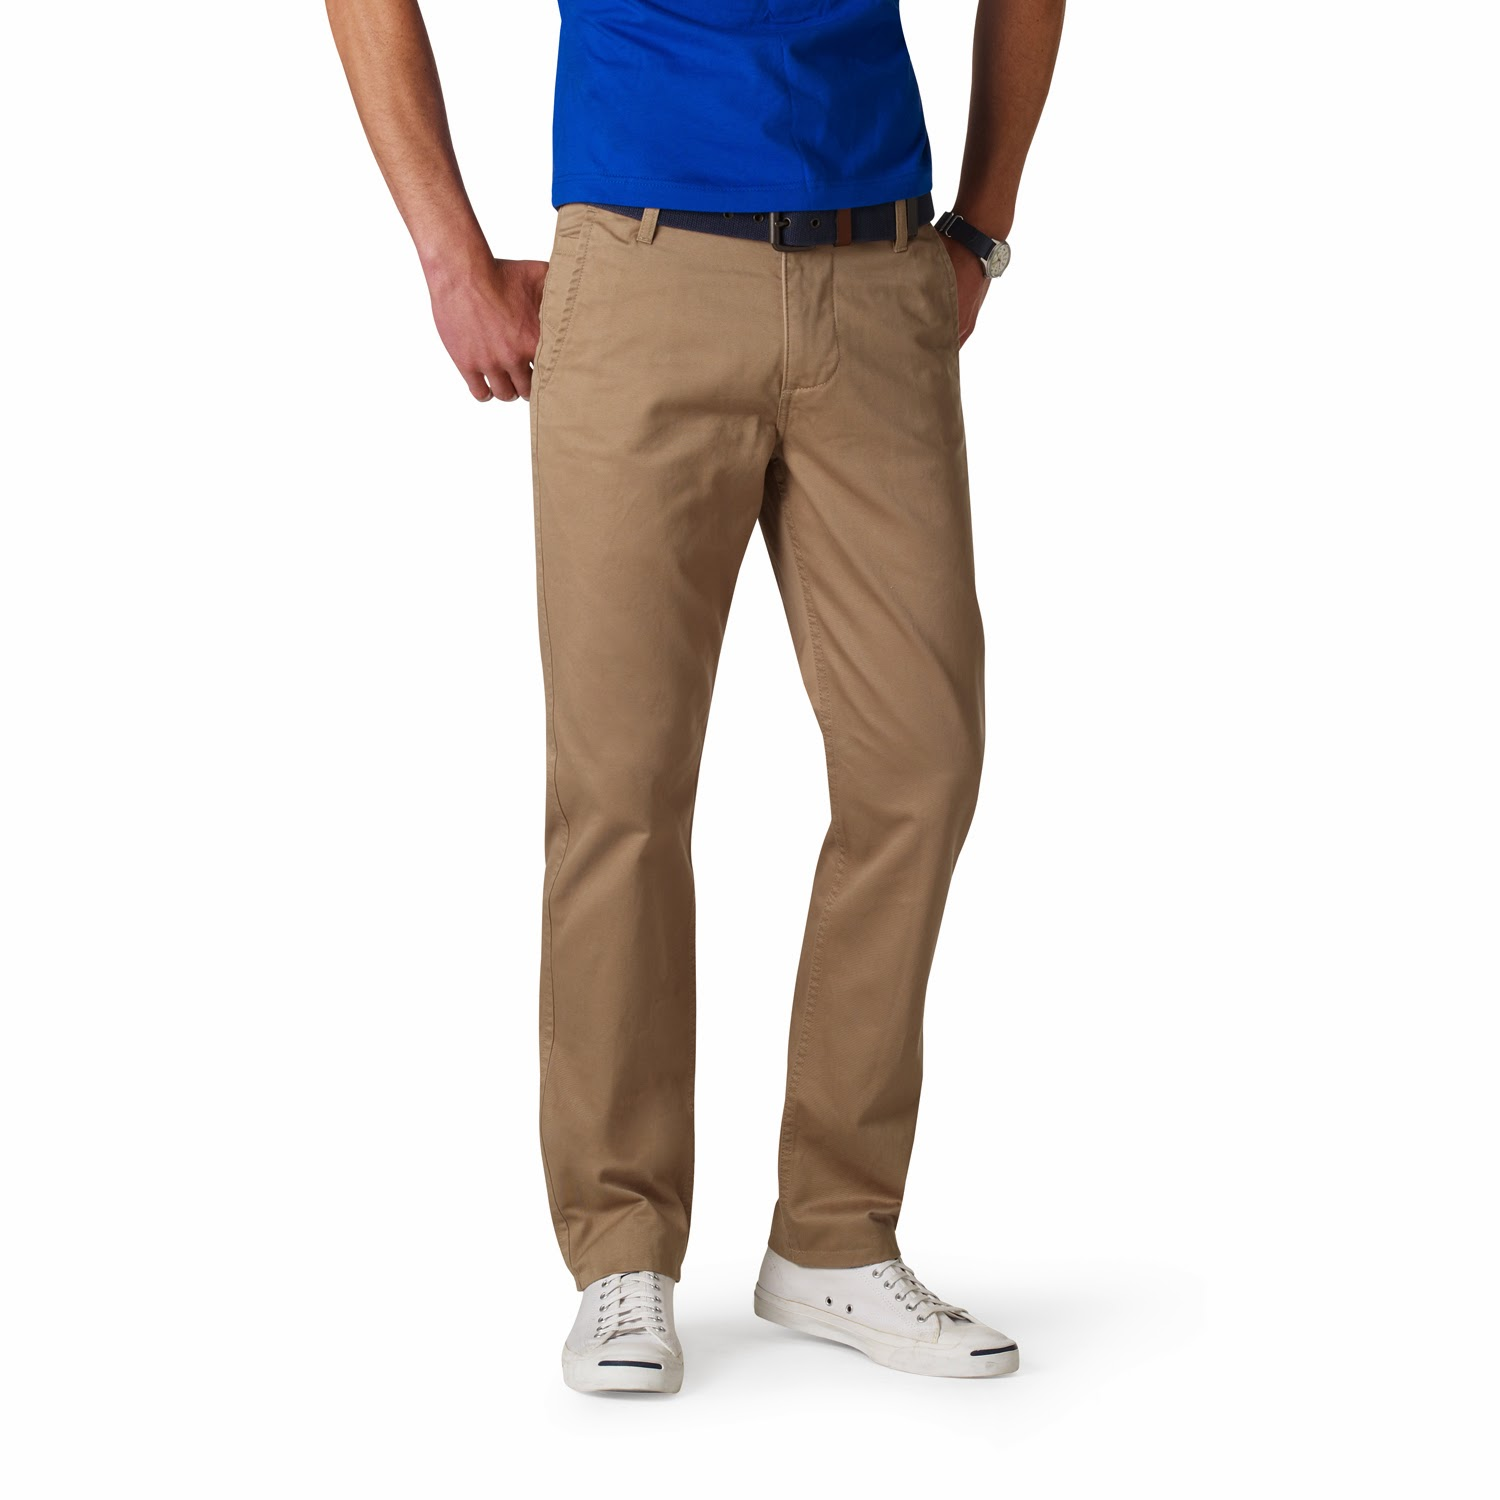 Dockers Game Day Khakis Front View